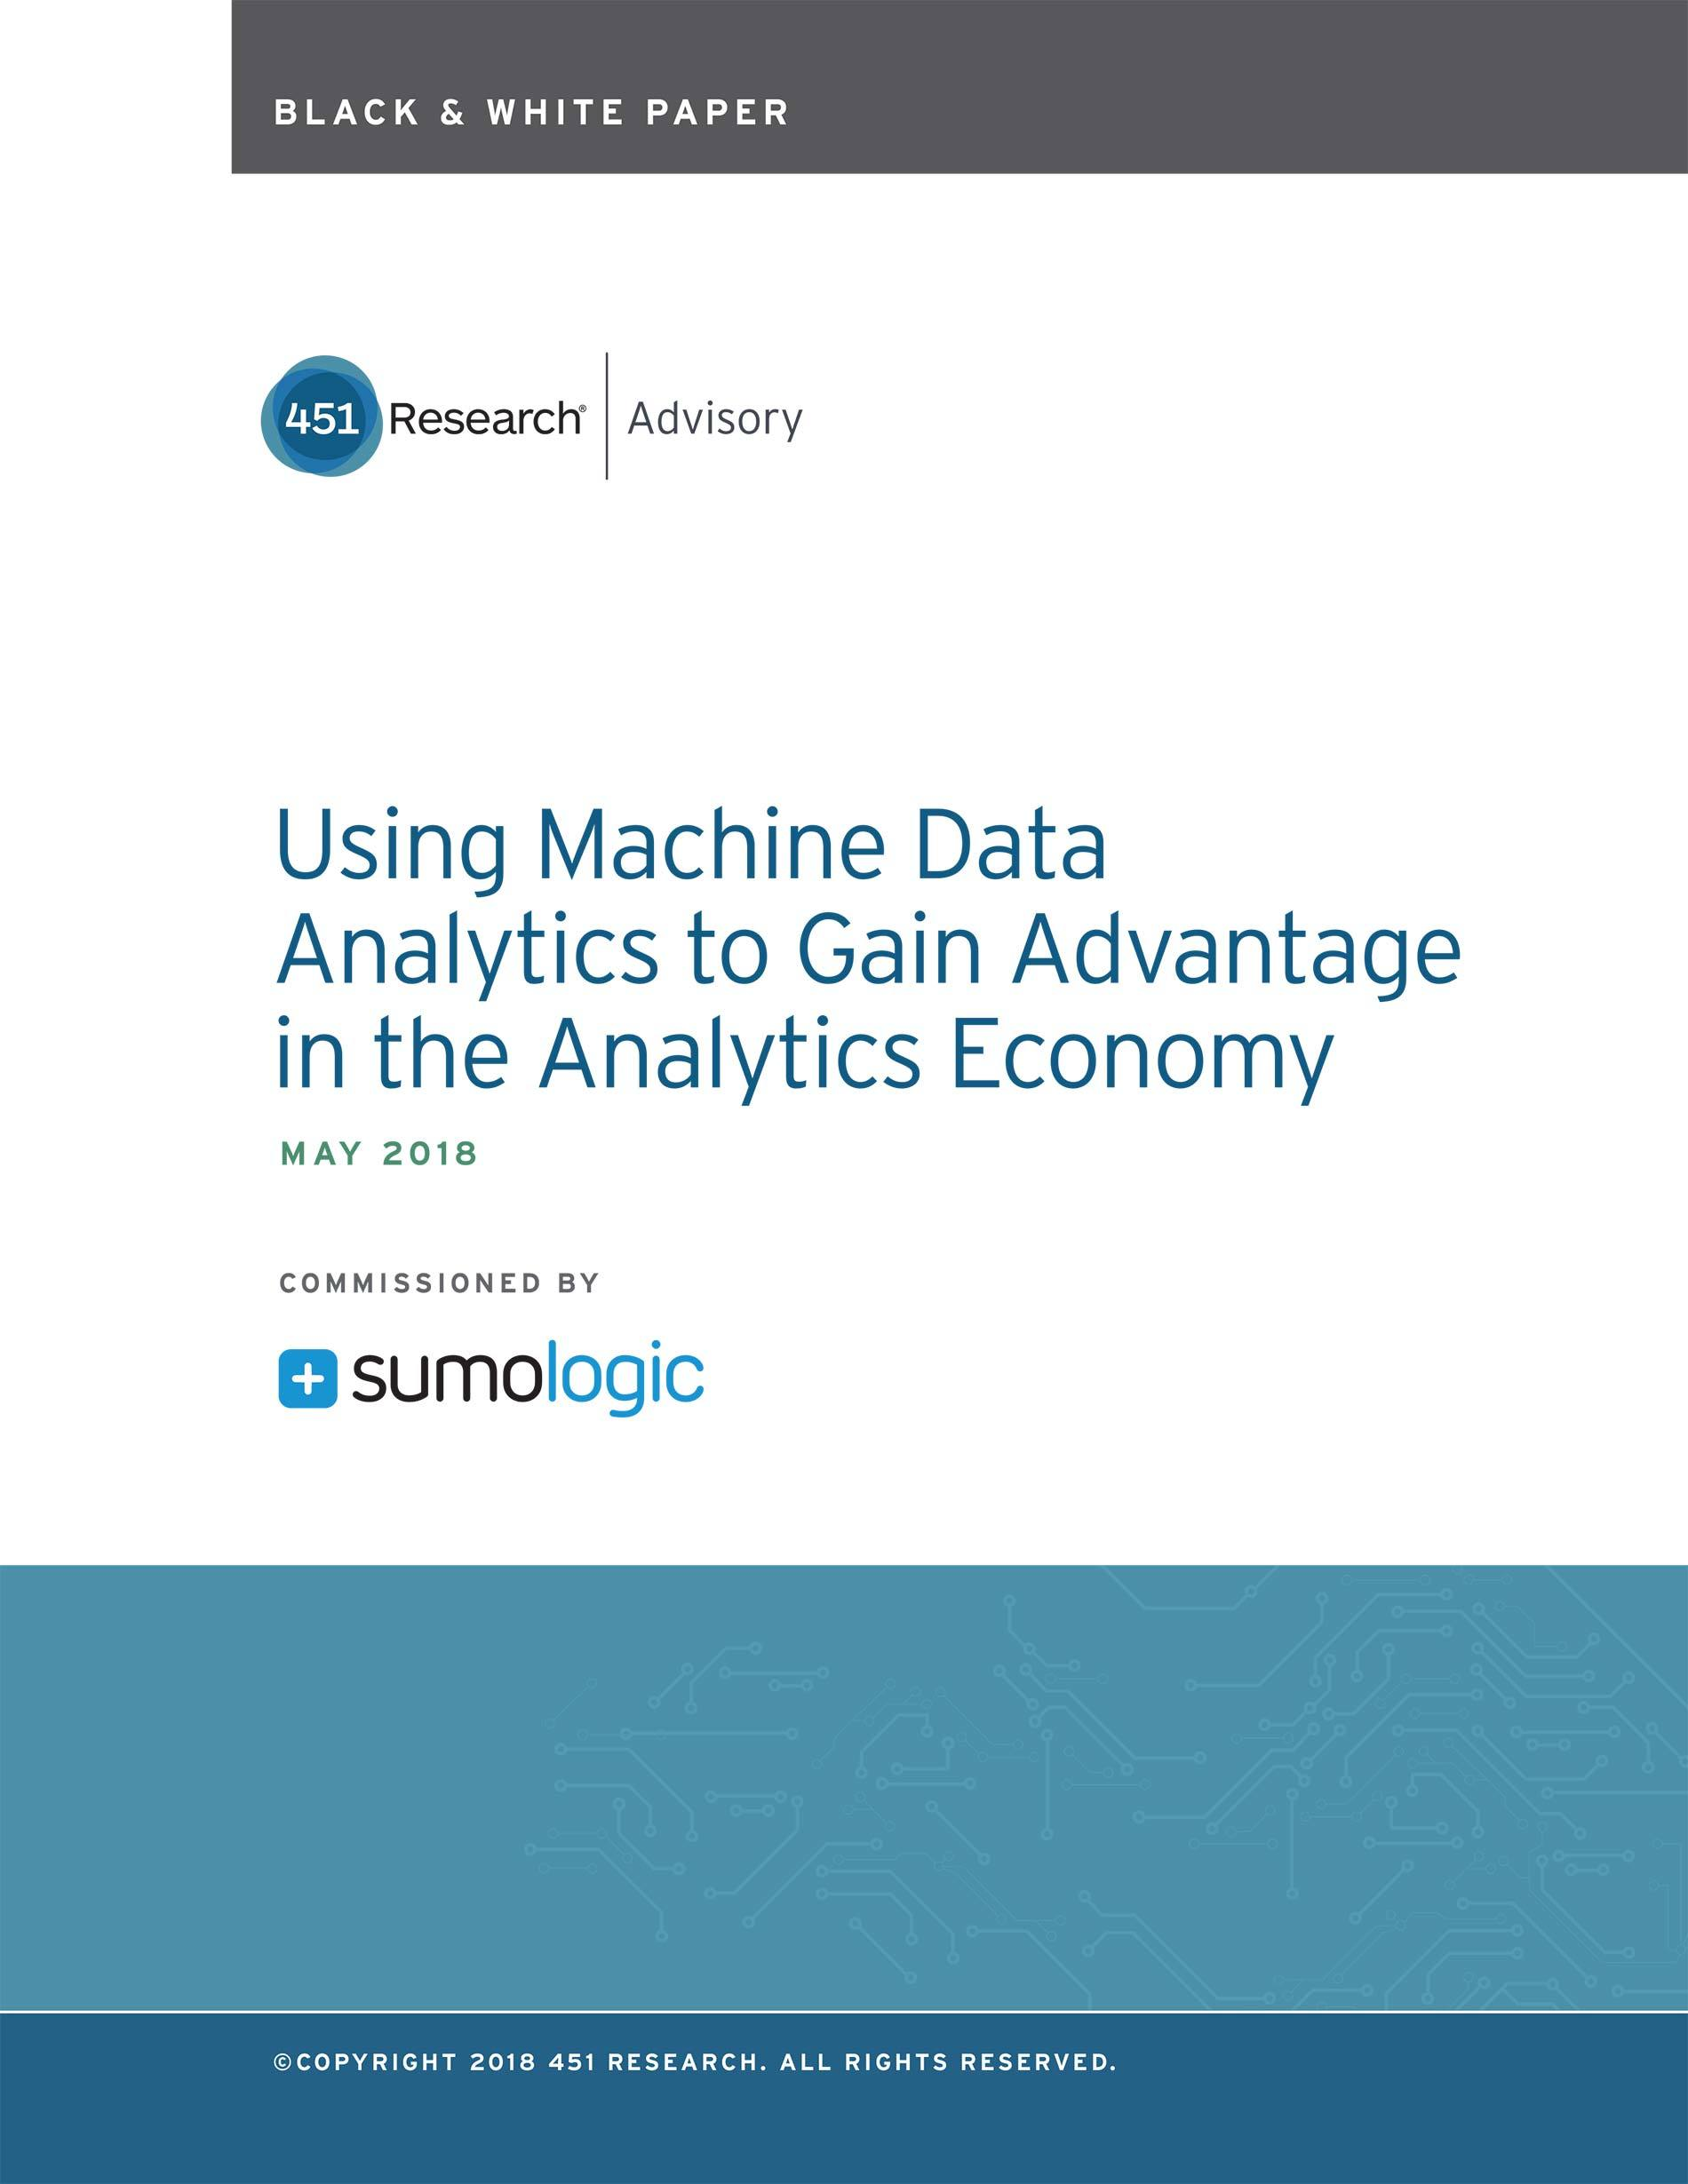 Using Machine Data Analytics to Gain Advantage in the Analytics Economy